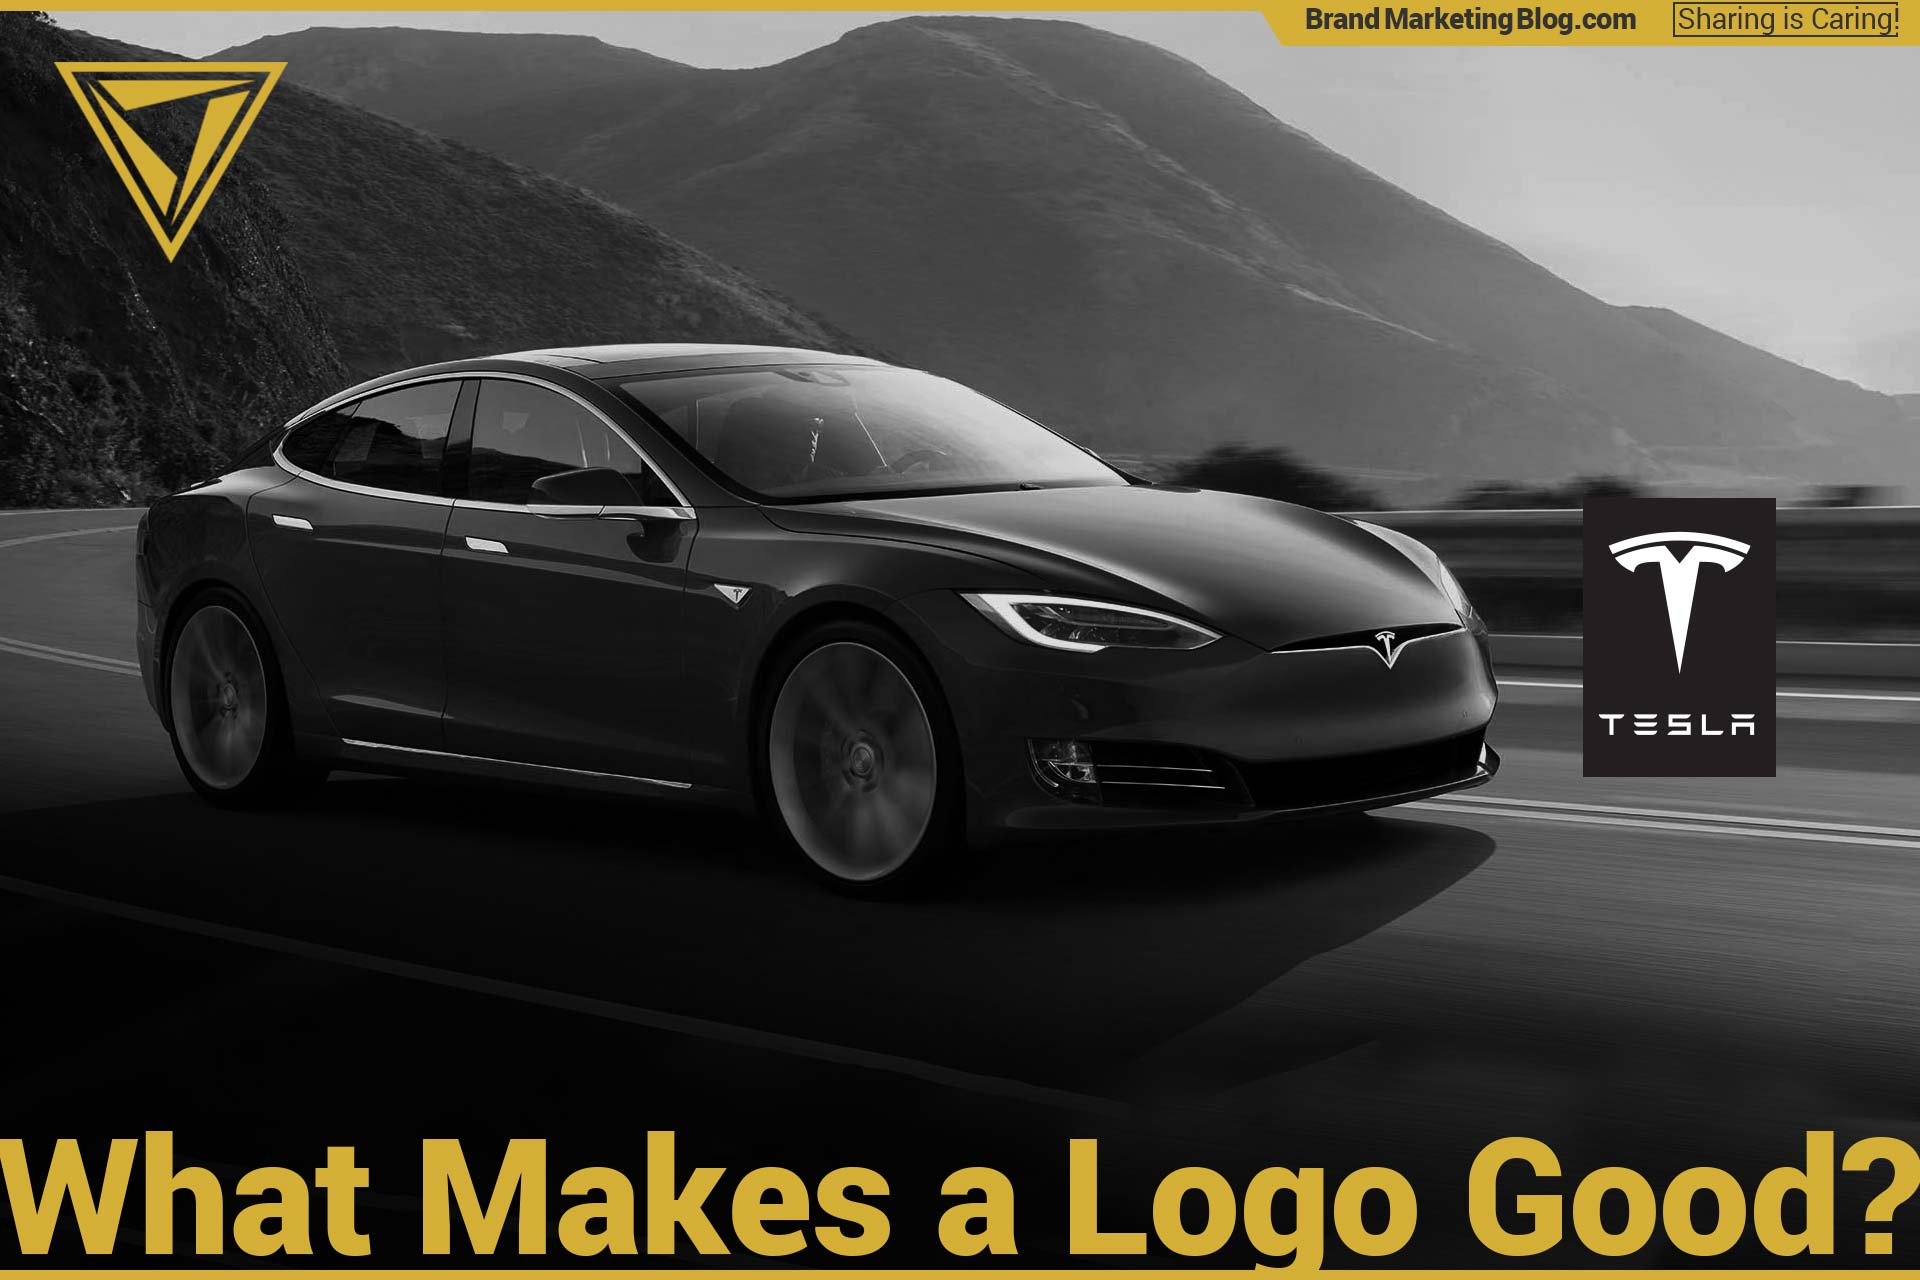 What makes a good logo? Tesla Model S and Tesla logo